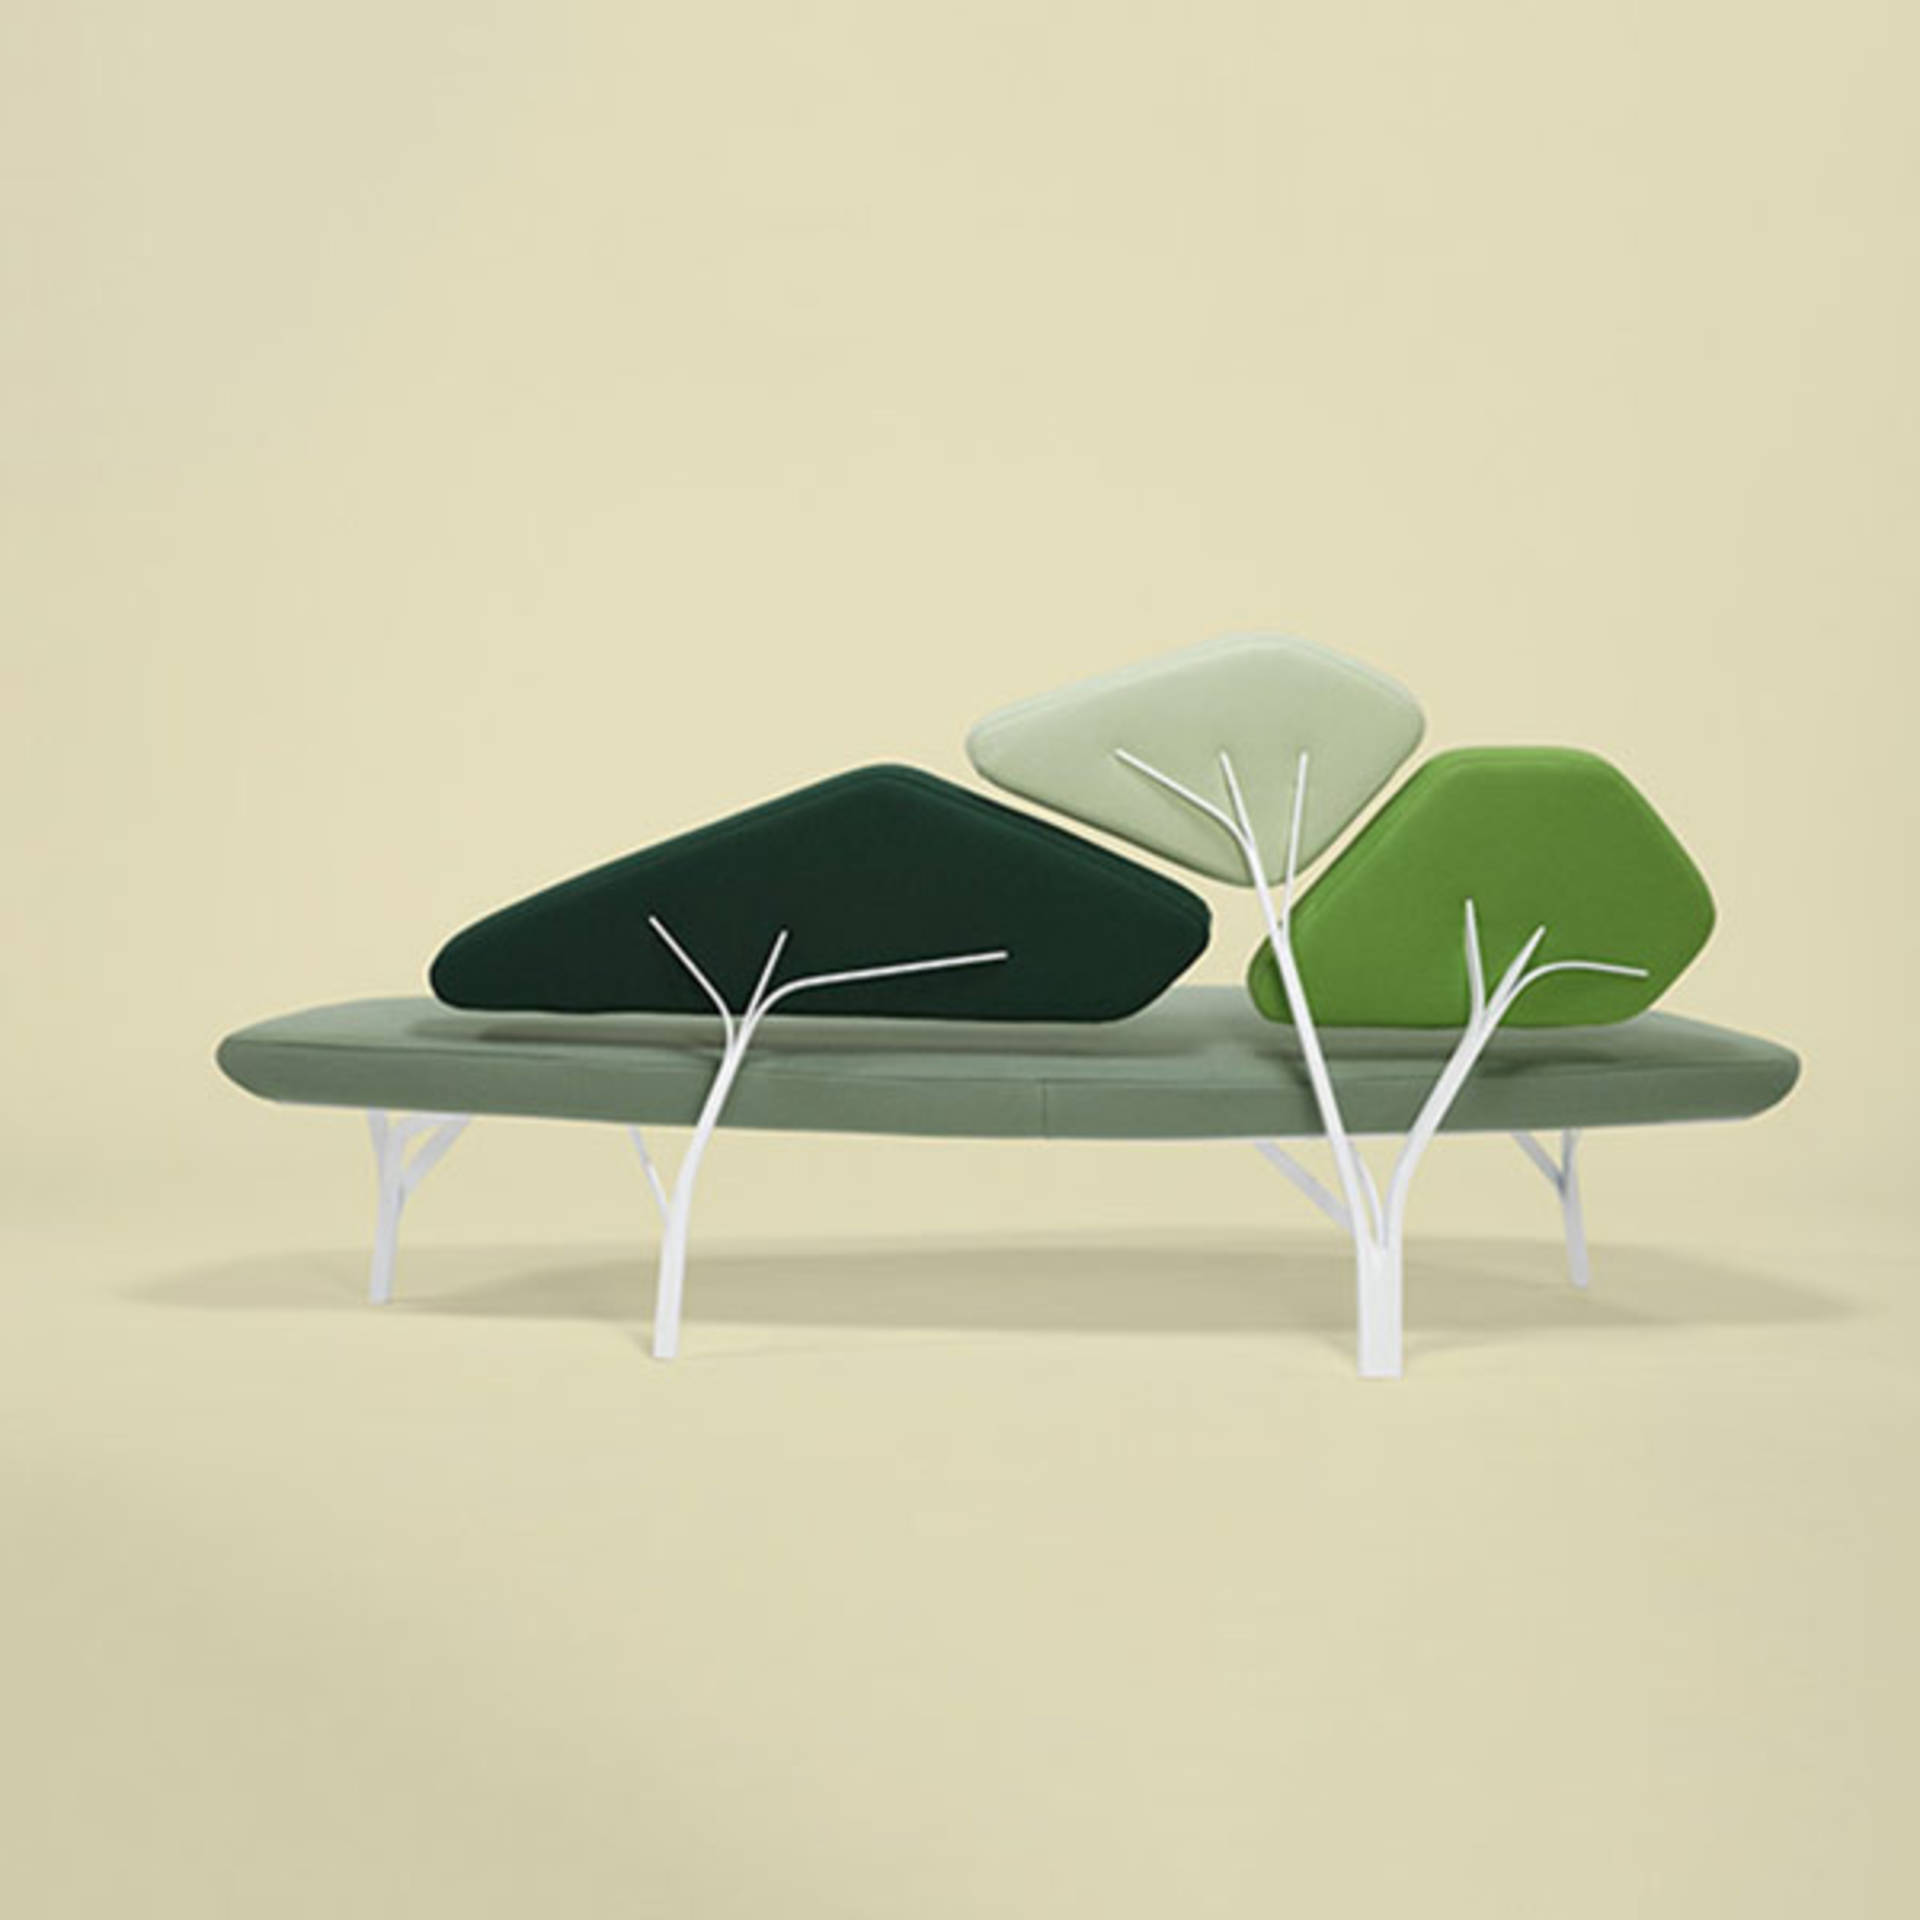 Borghese Sofa Shaped Stone Pine Tree by Noé Duchaufour Lawrance ...